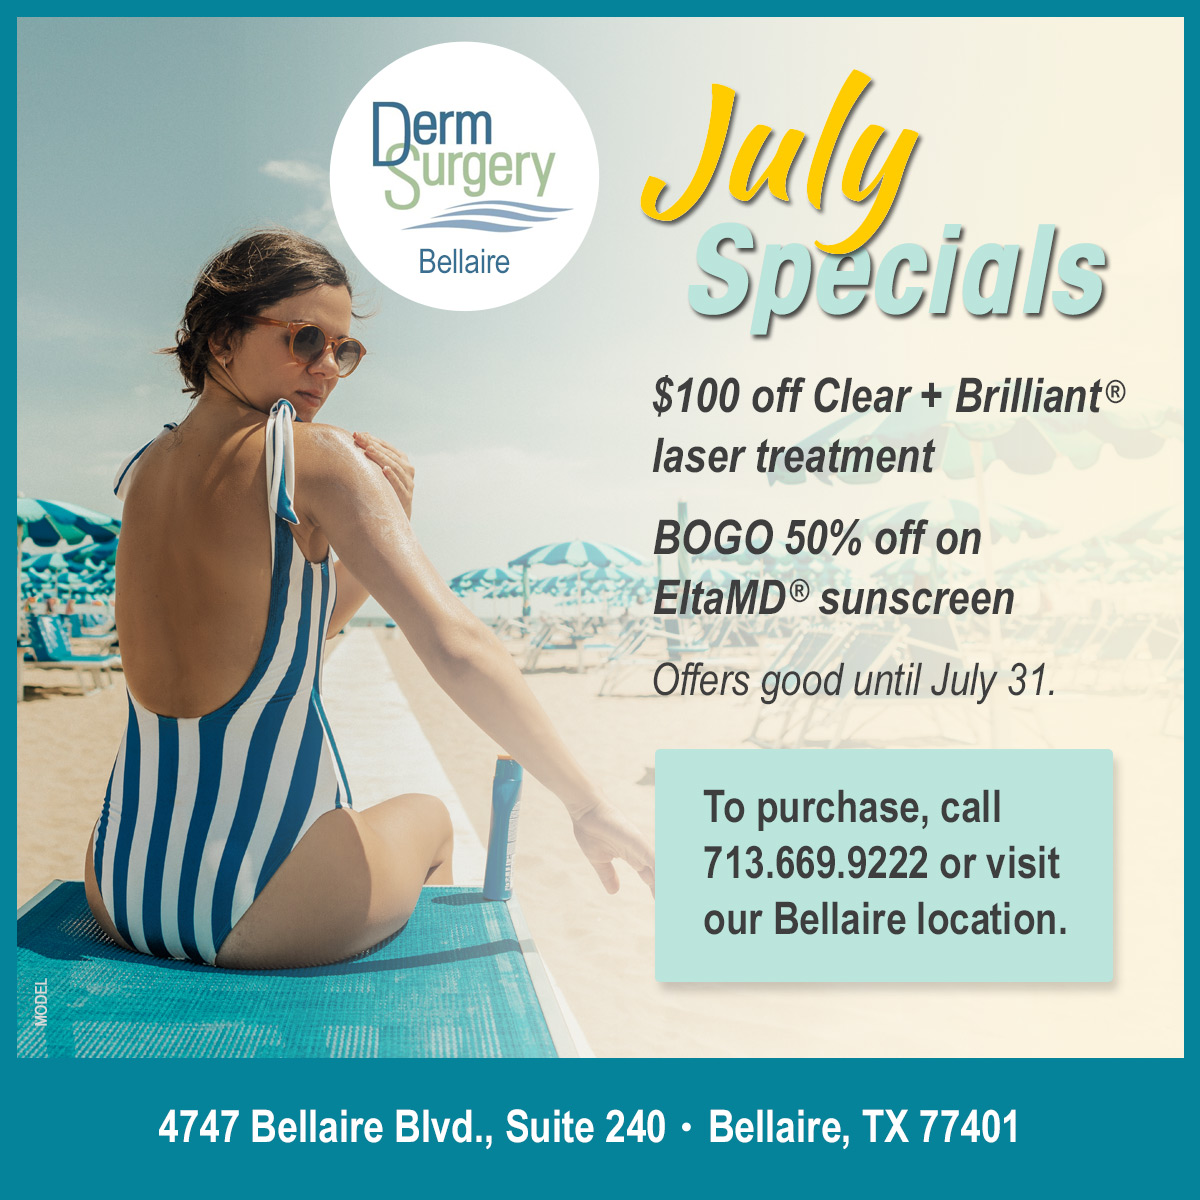 Bellaire July Specials